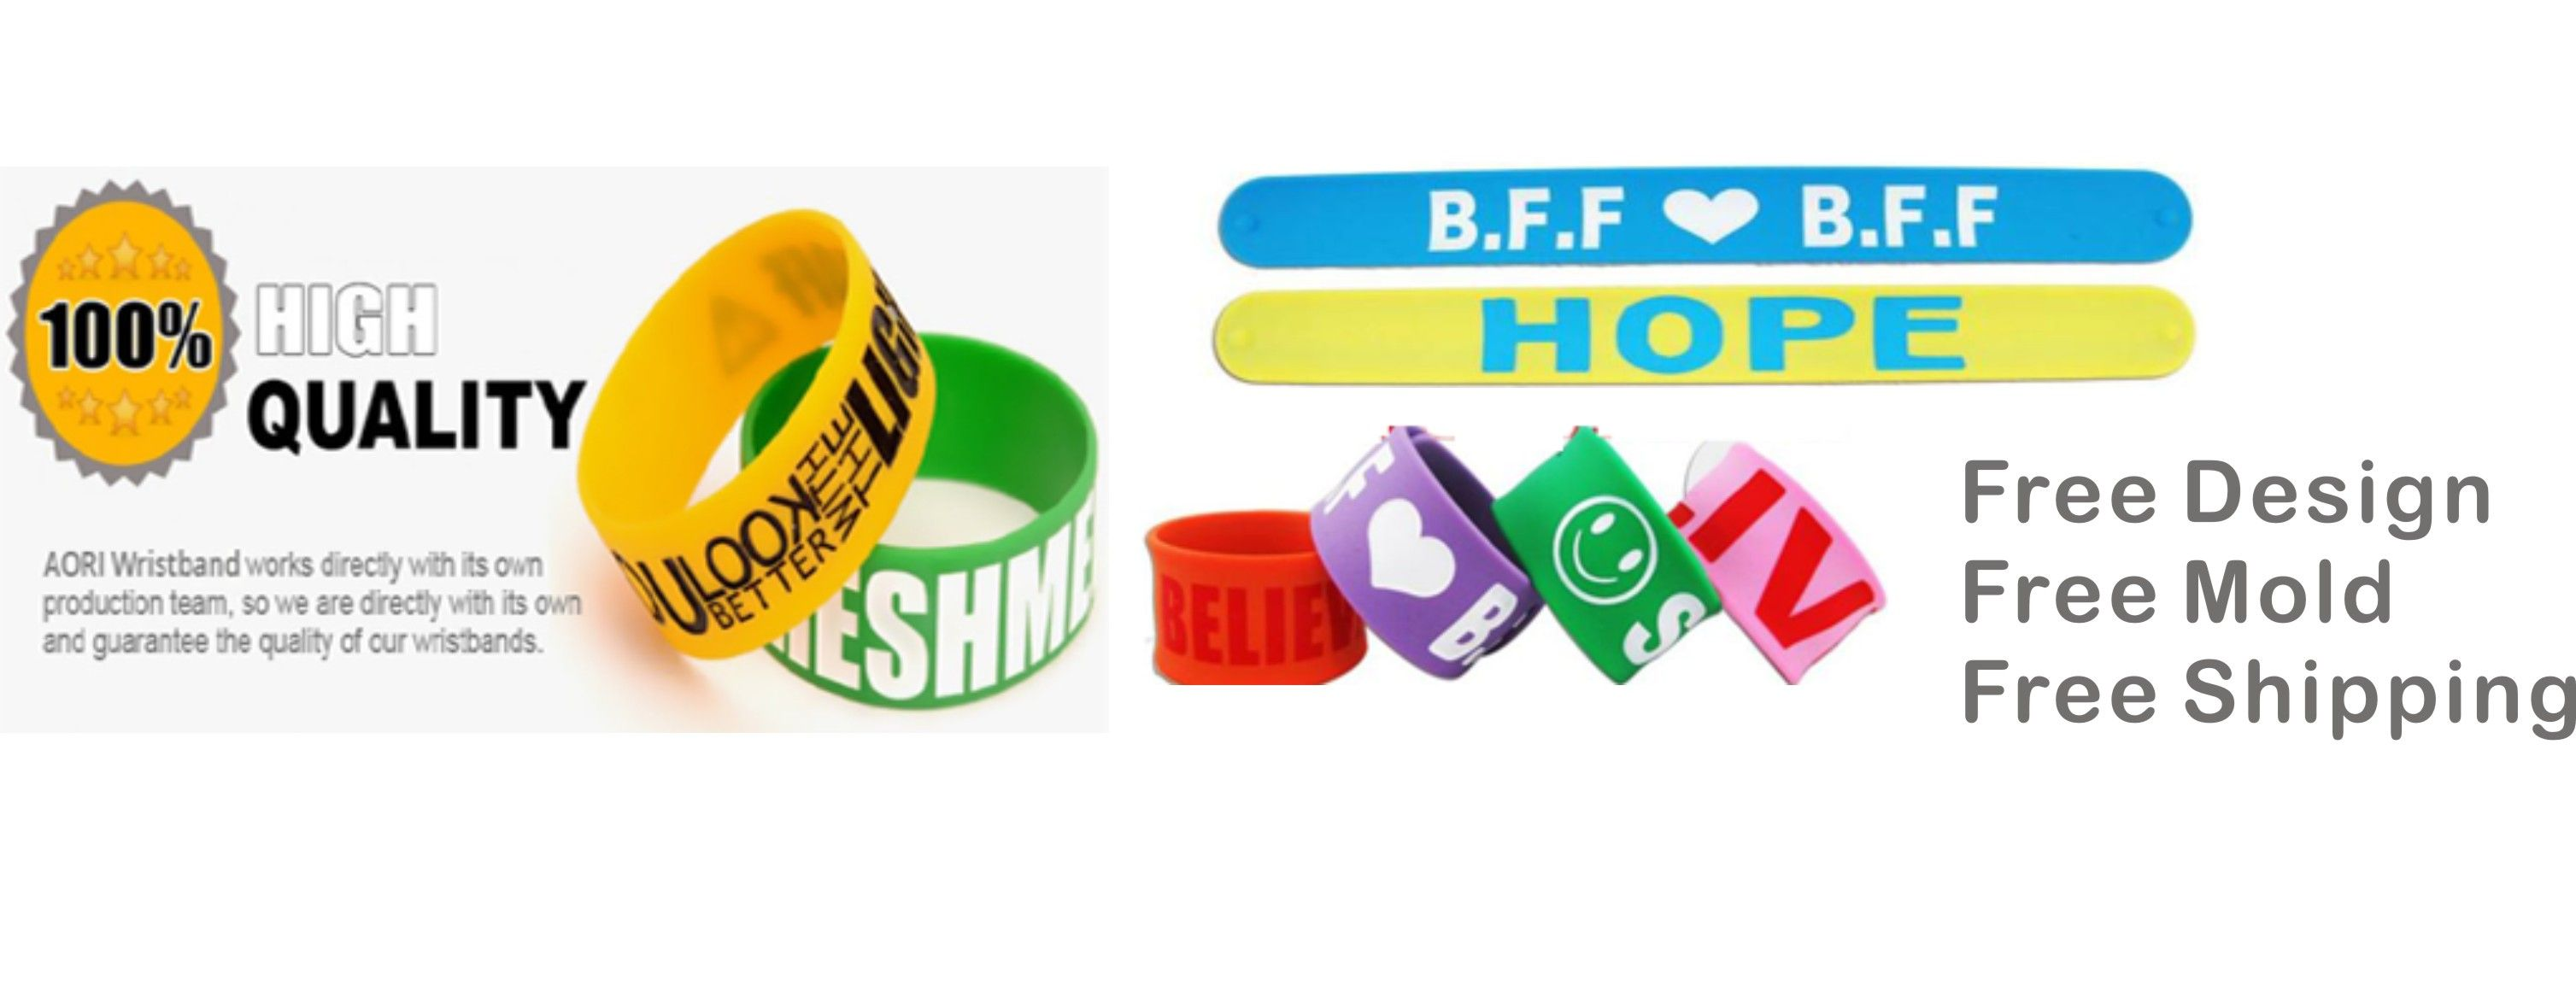 Aori Is Design Your Own Silicone Bracelet Factory In China We Can Help You Free Shipping Order